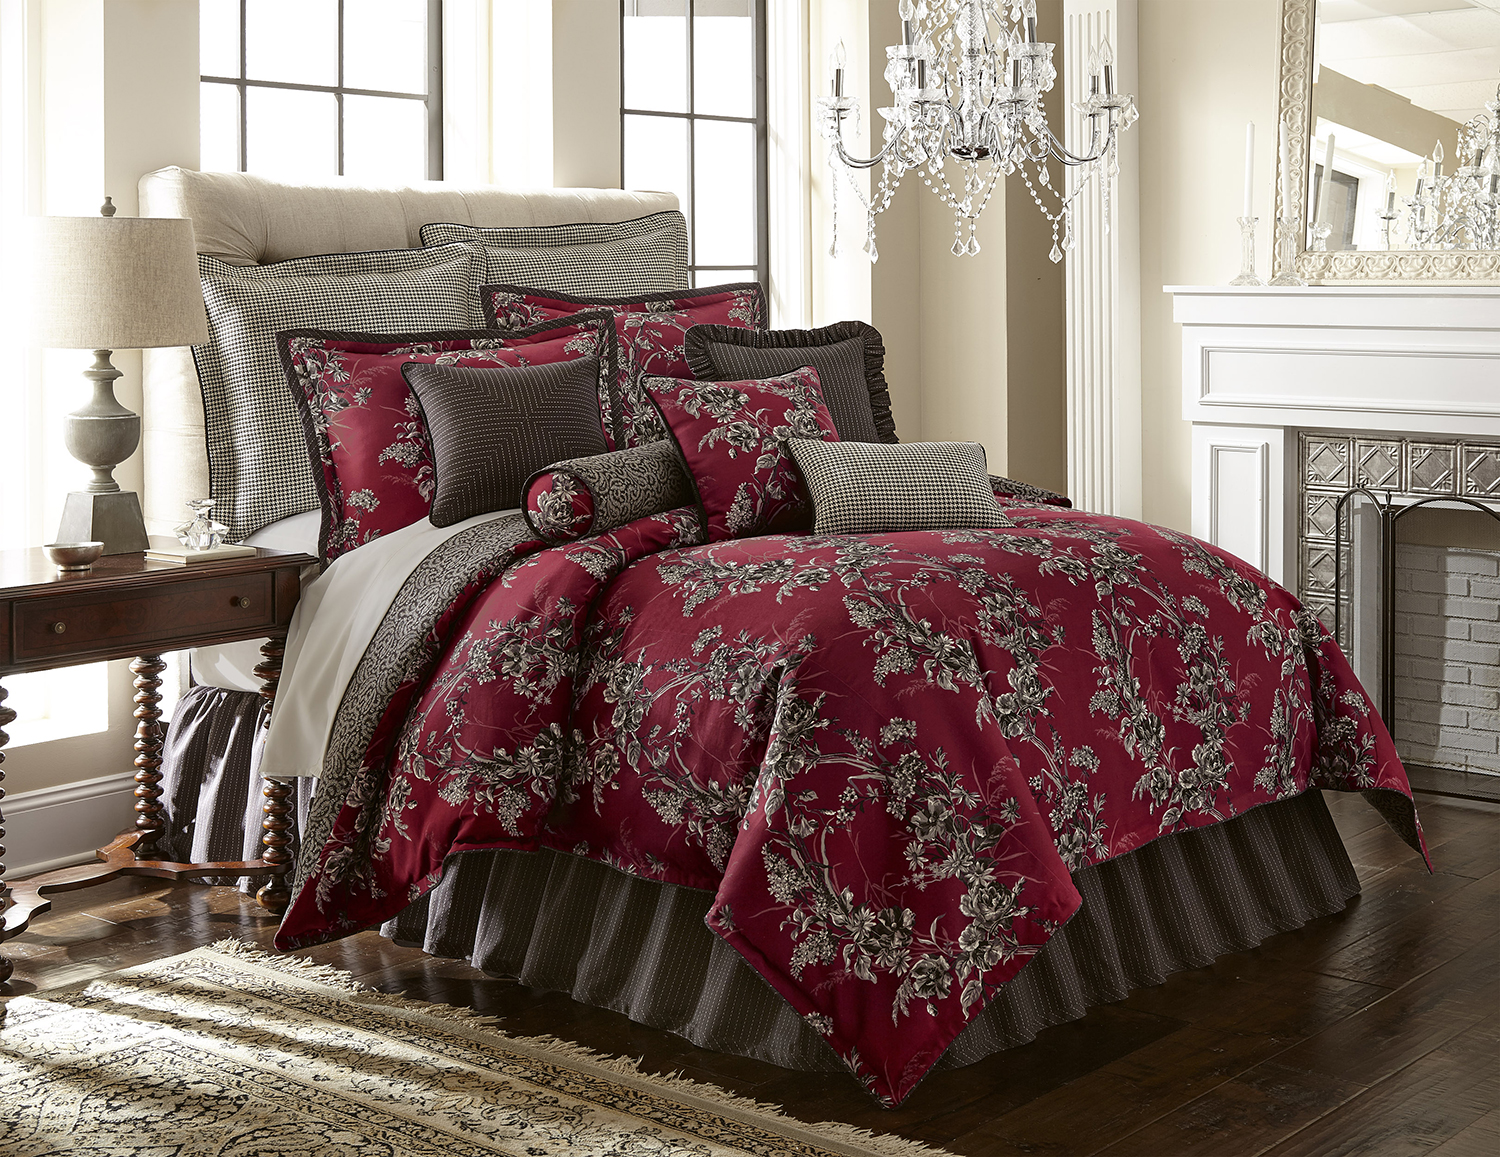 wonderful queen bed size platform and natori bedding also rug